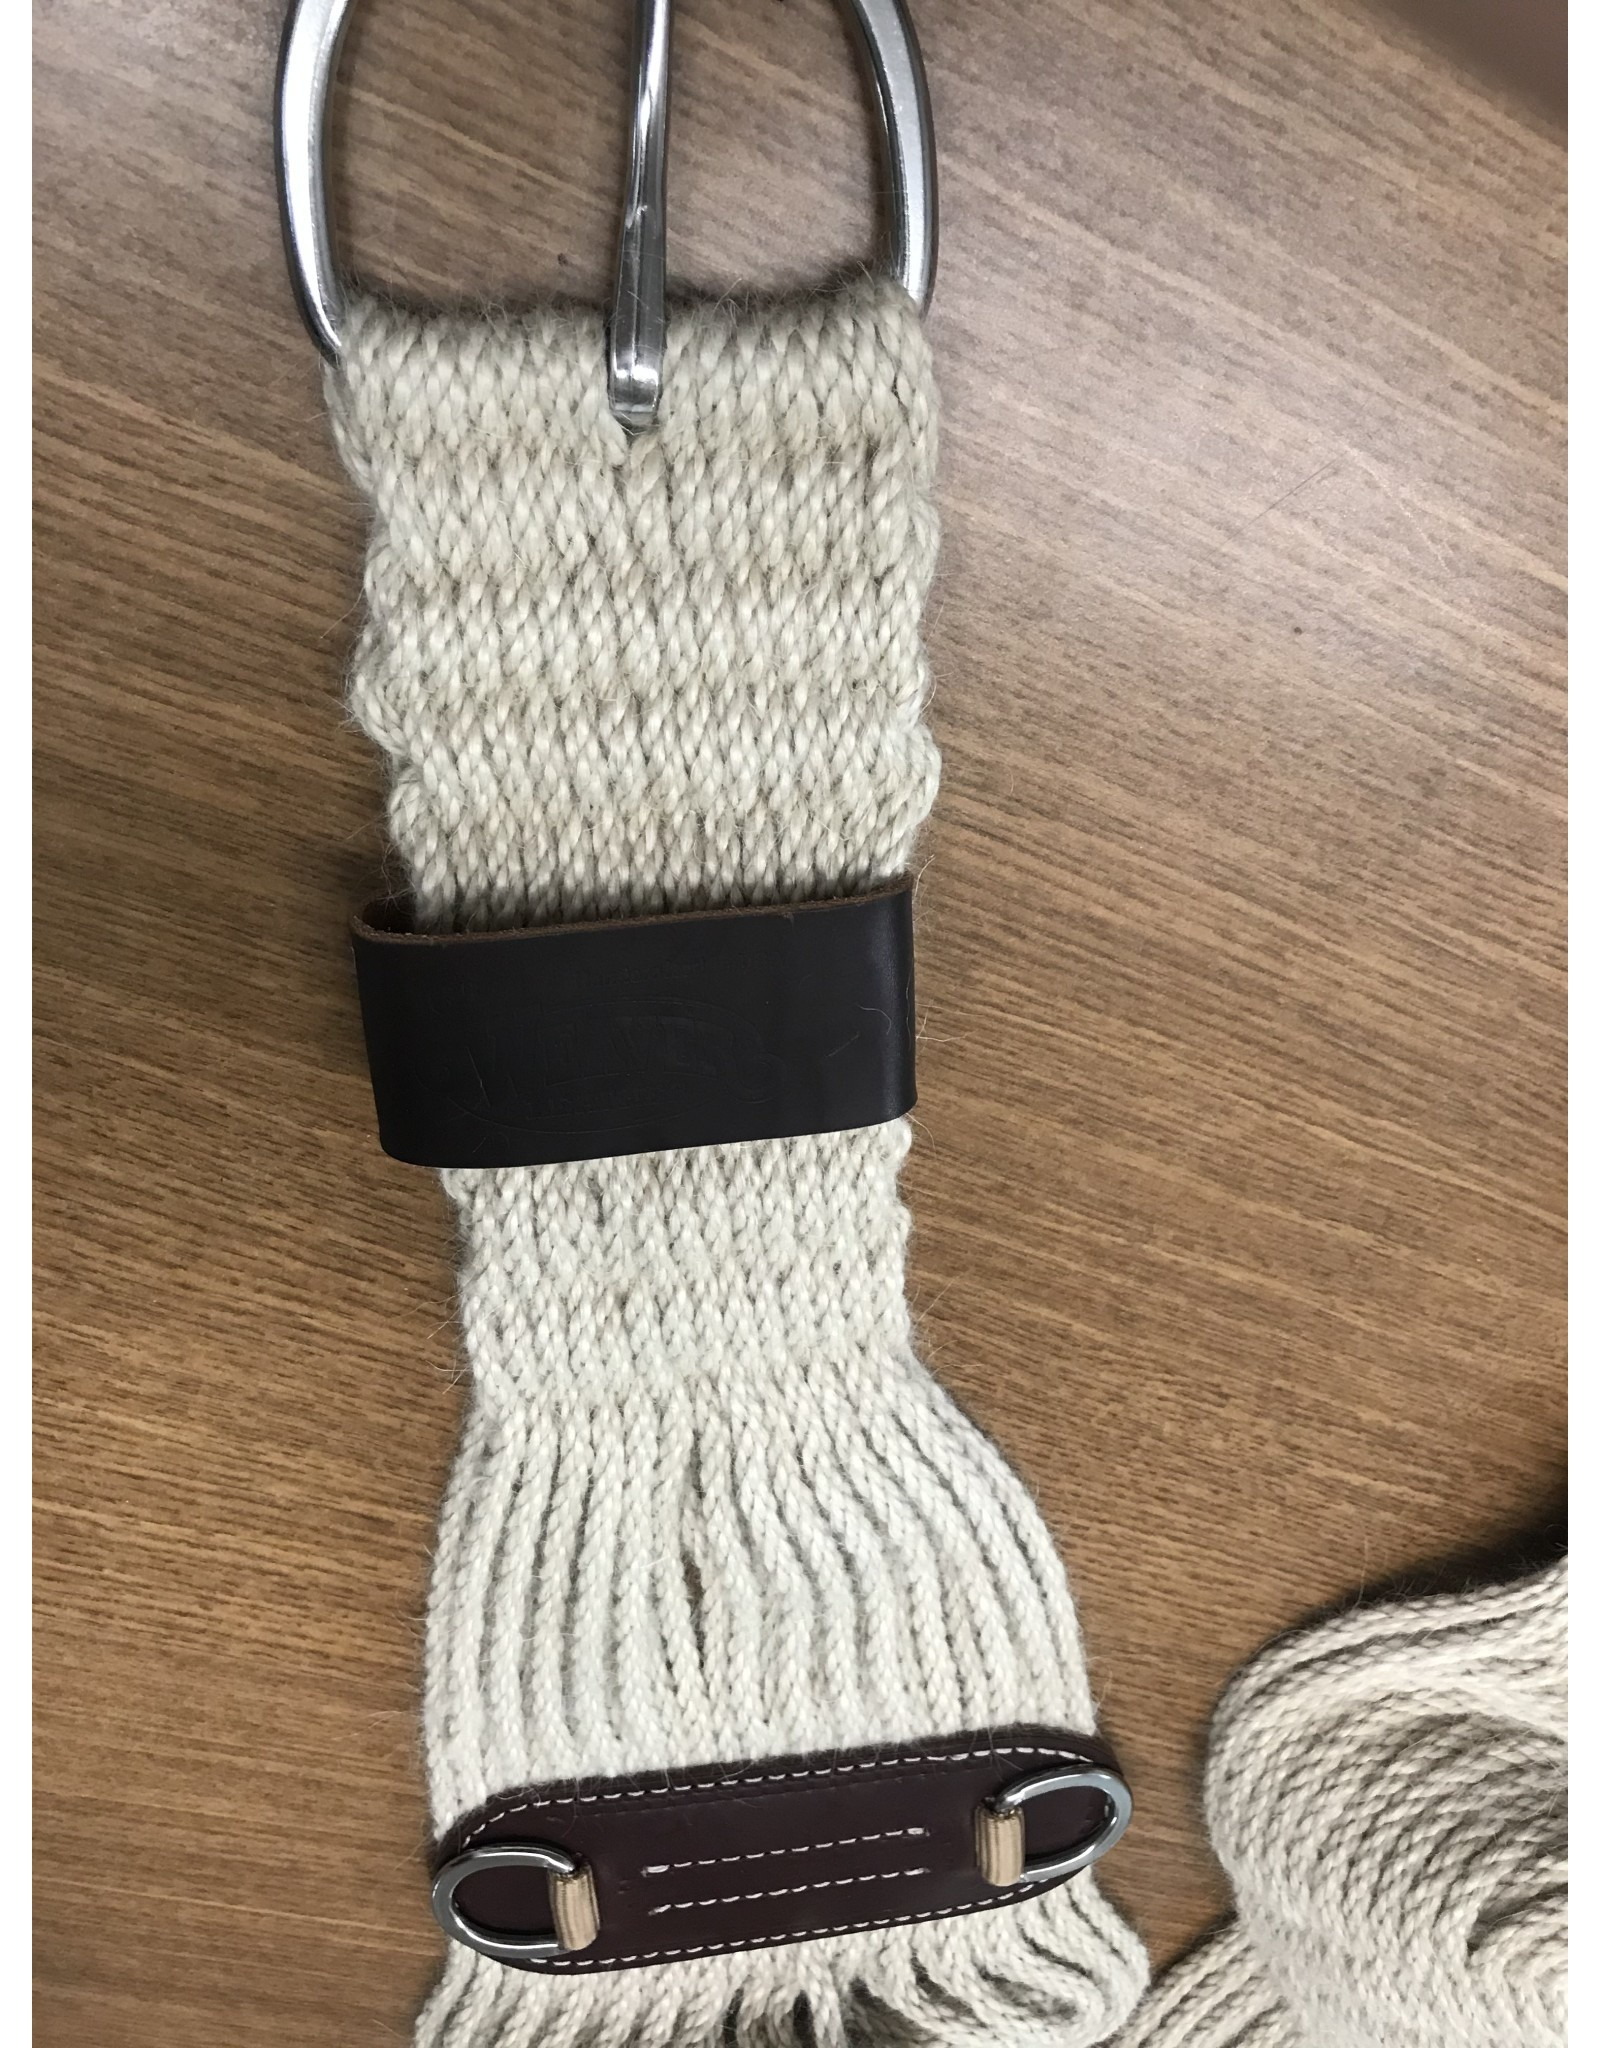 CIN* 100%  Mohair Roper Cinch - 32'' #35-2431-32 (mid cinch with leather under and one leather cinch holder basic hardware) B/O